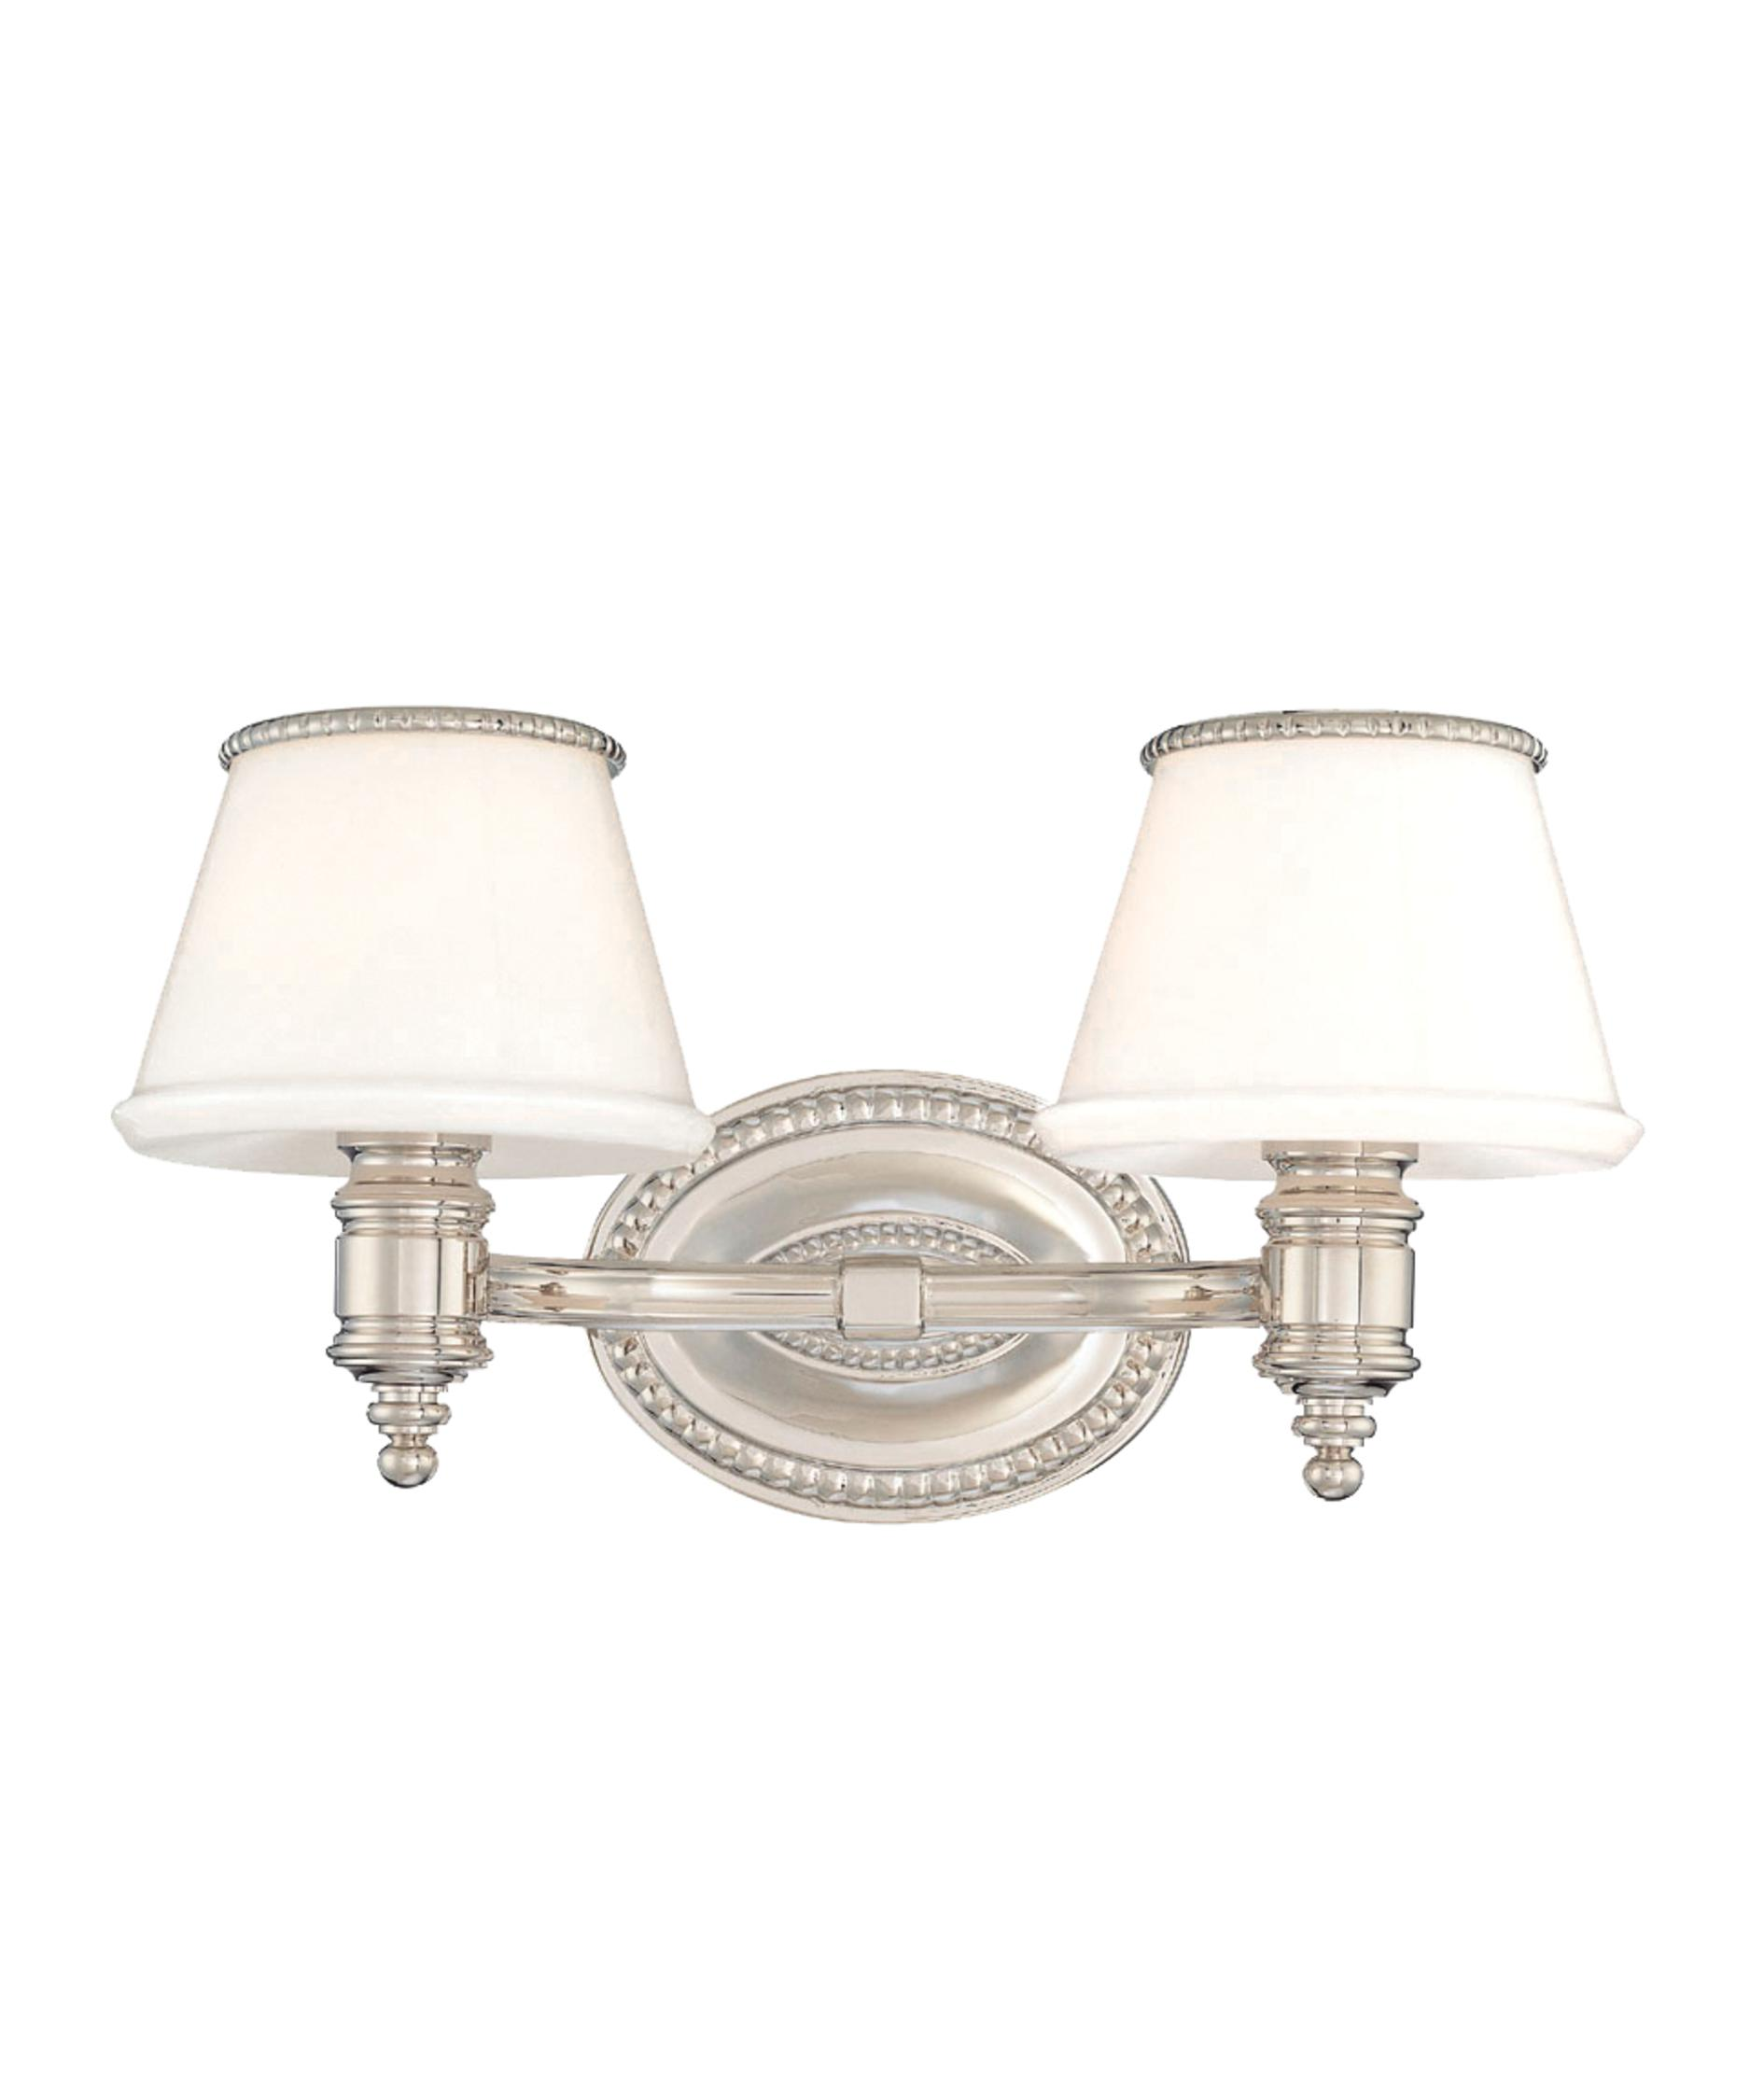 Bathroom Vanity Lights Polished Nickel hudson valley 4942 richmond 15 inch wide bath vanity light